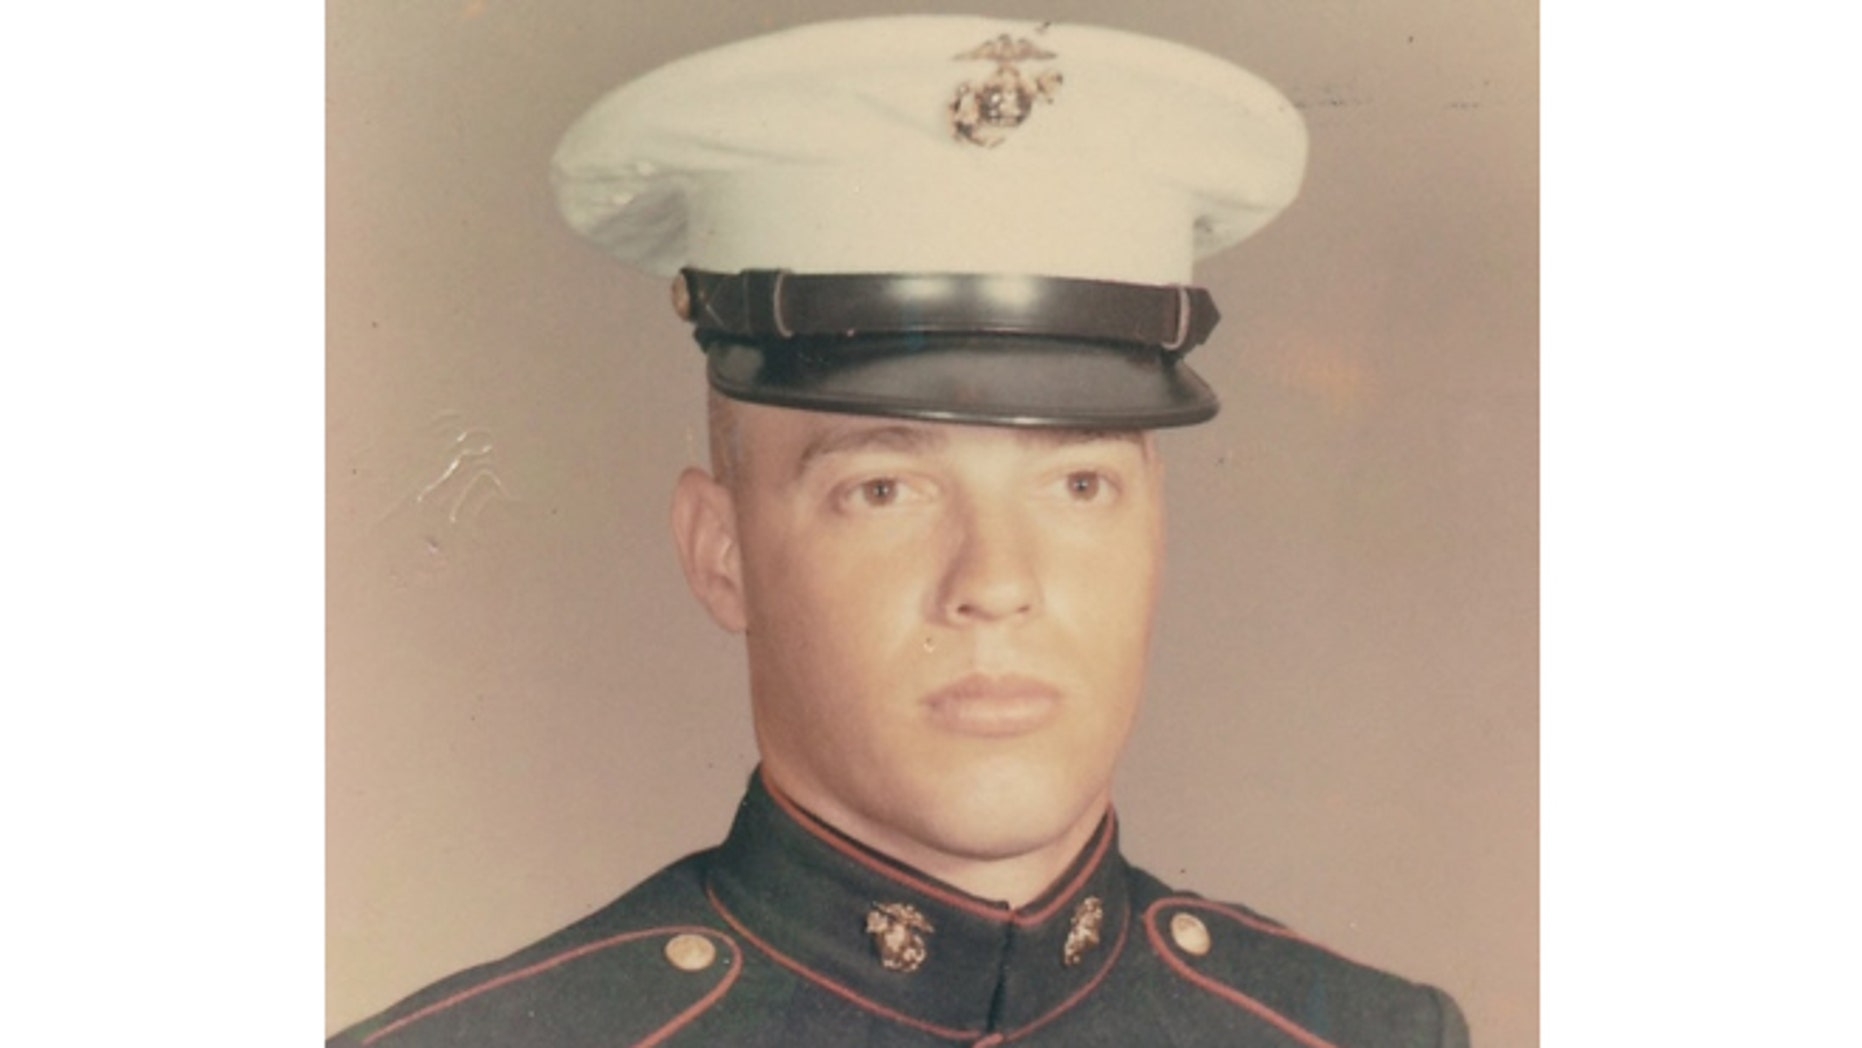 Zambito is pictured here as a young Marine.